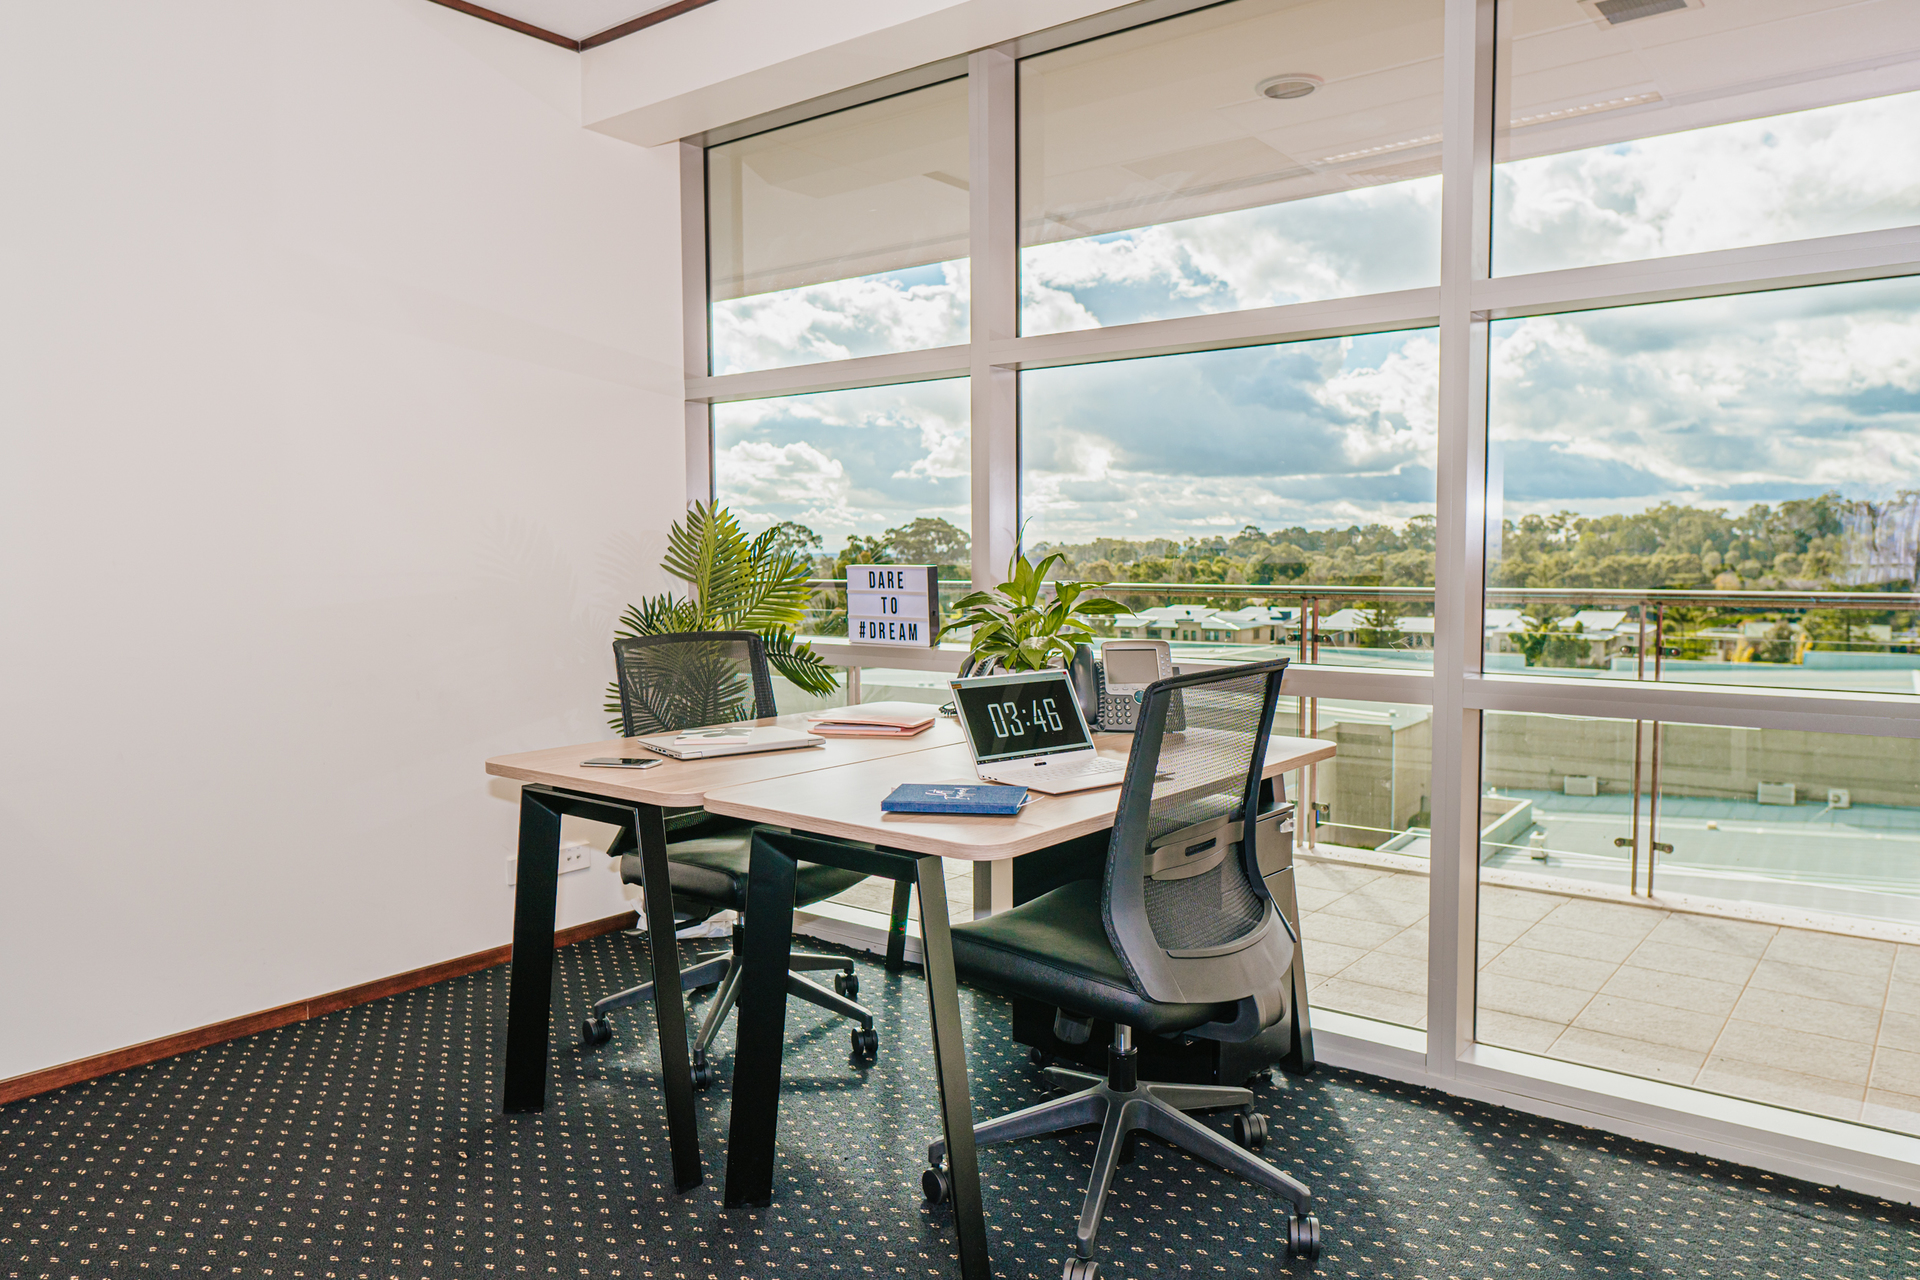 4-person workspace with natural light located in the heart of the Norwest Business Park